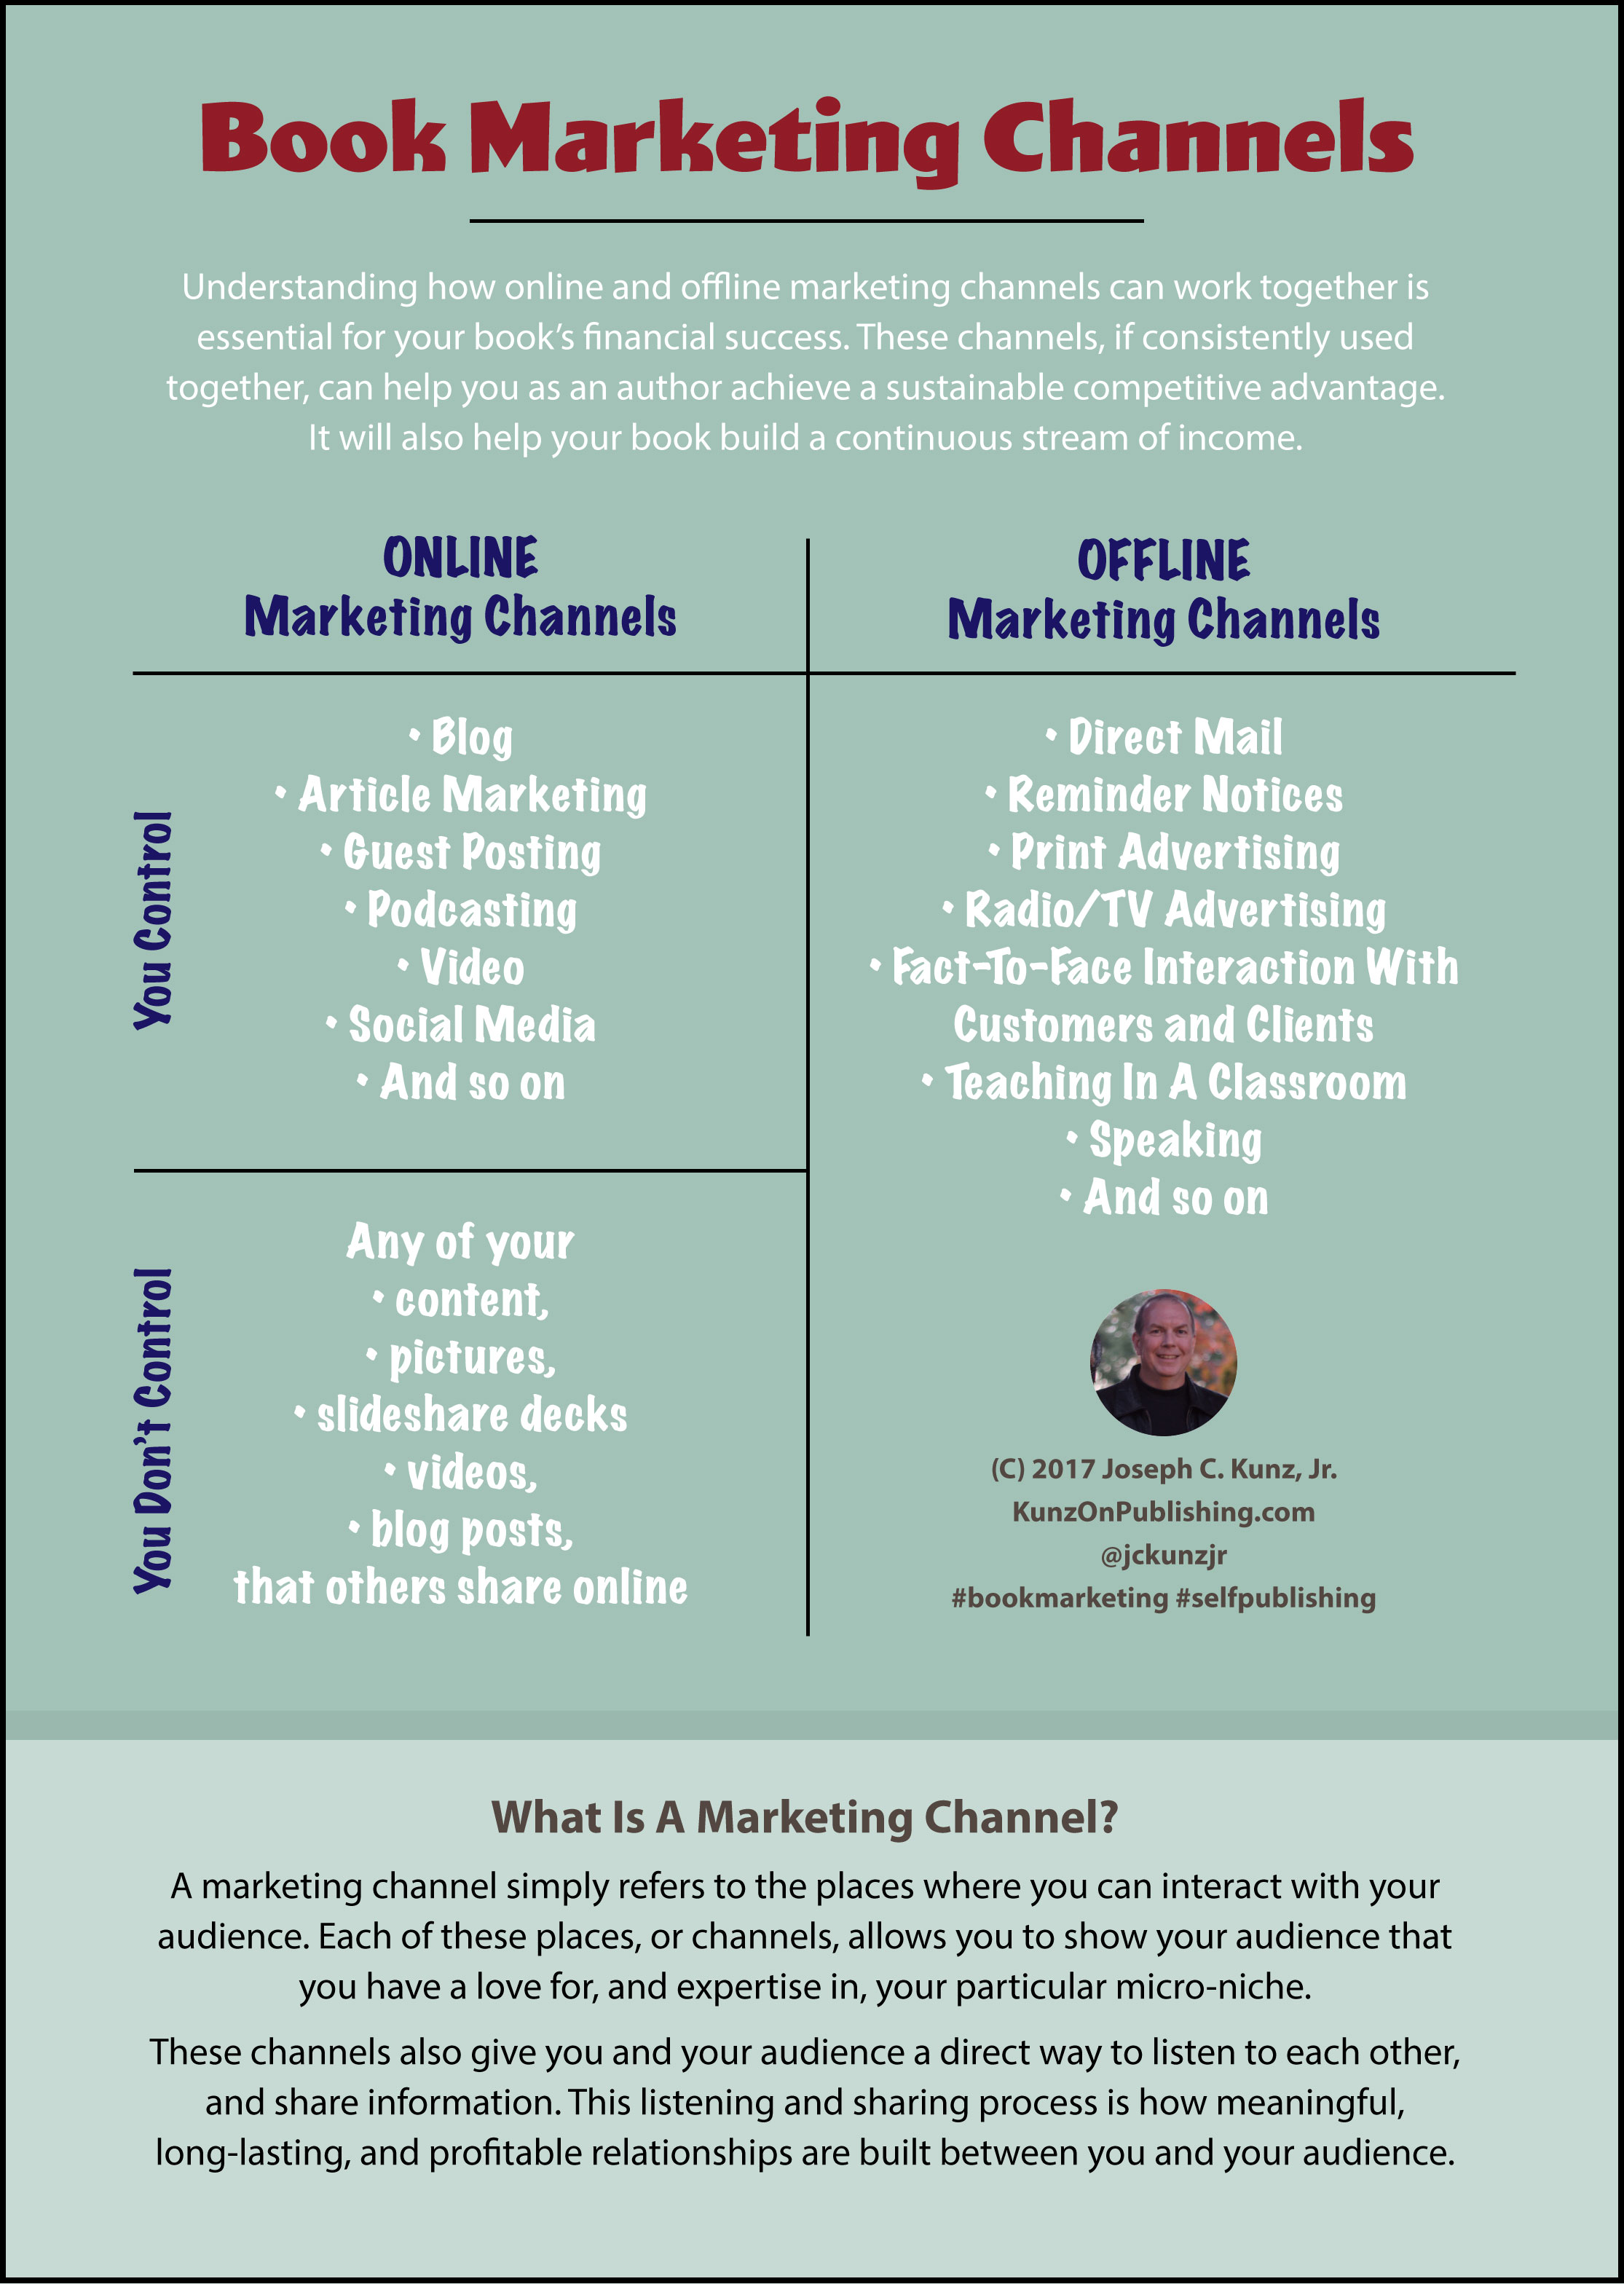 Book Marketing Channels Infographic